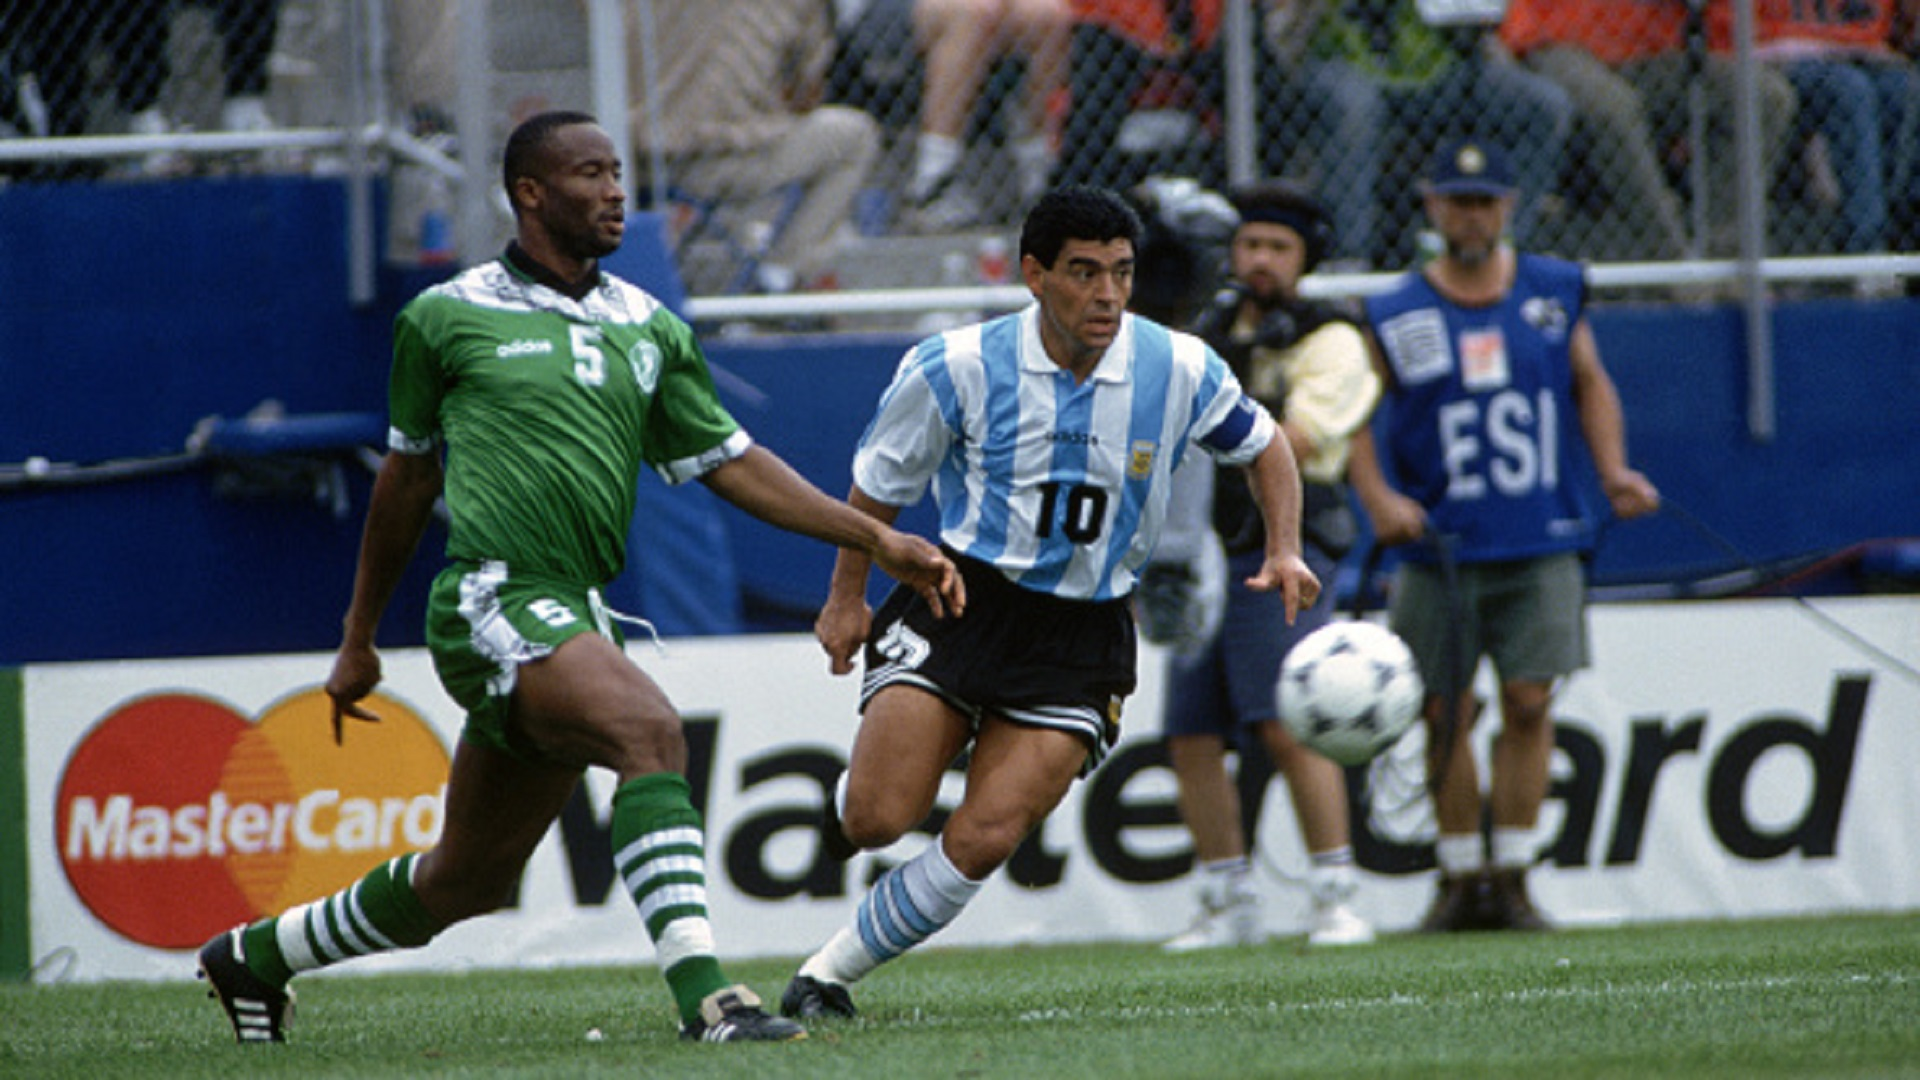 Nigeria v Argentina - Preview and possible lineups